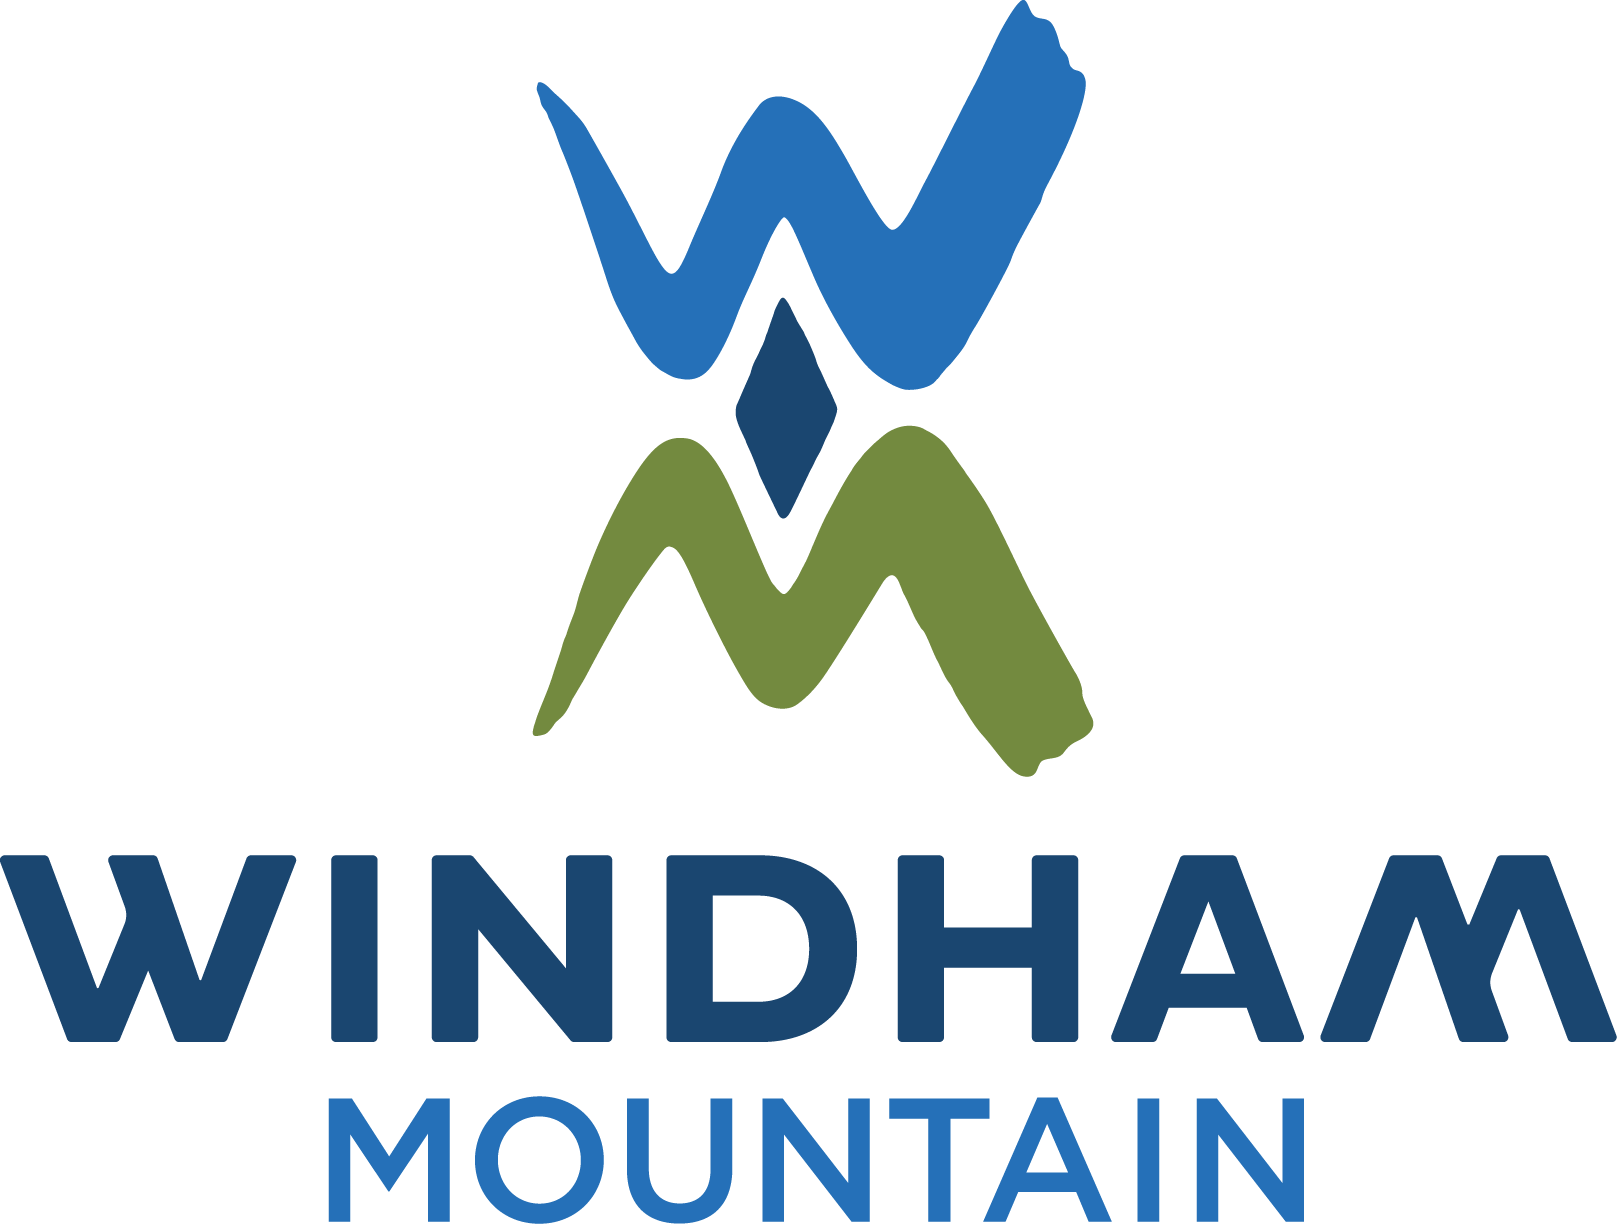 Windham mountain logo of skier jumping